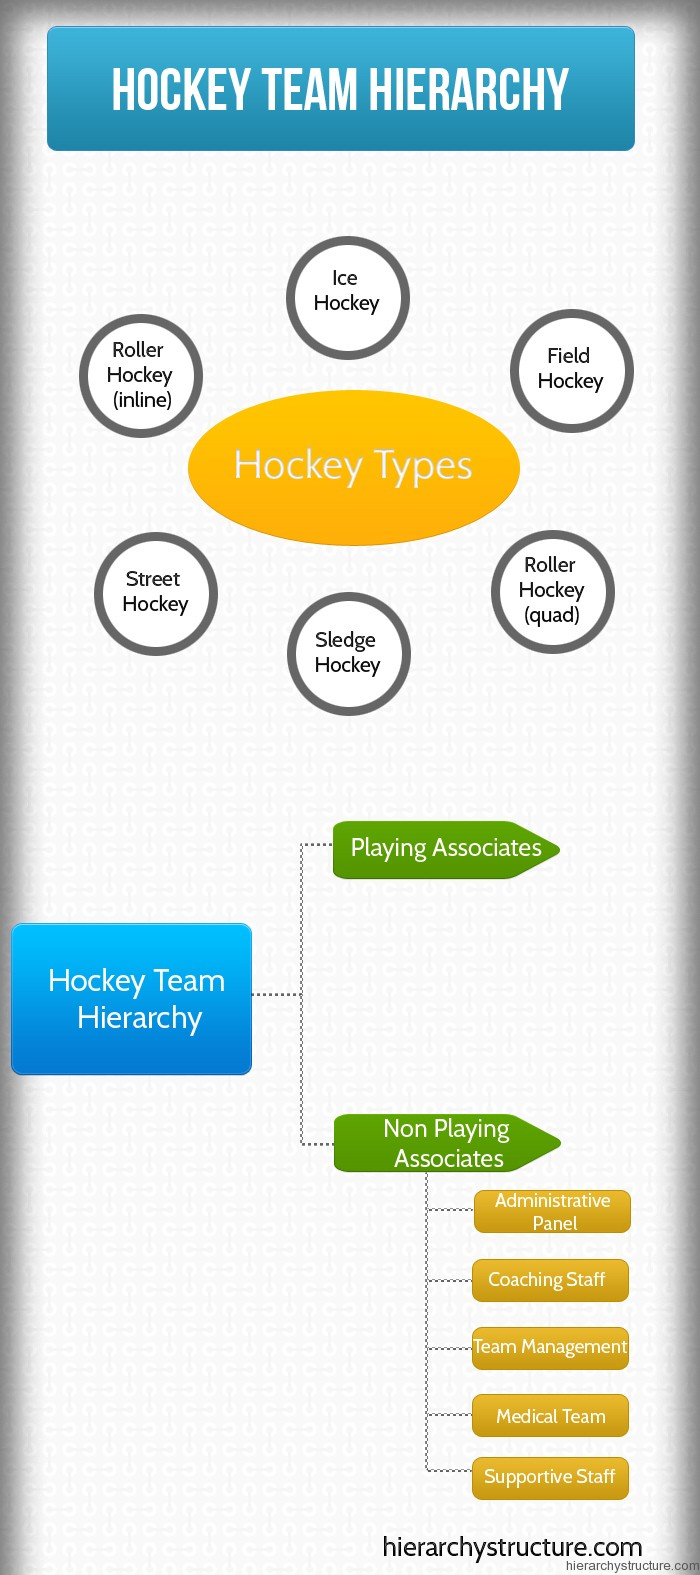 Hockey Team Hierarchy